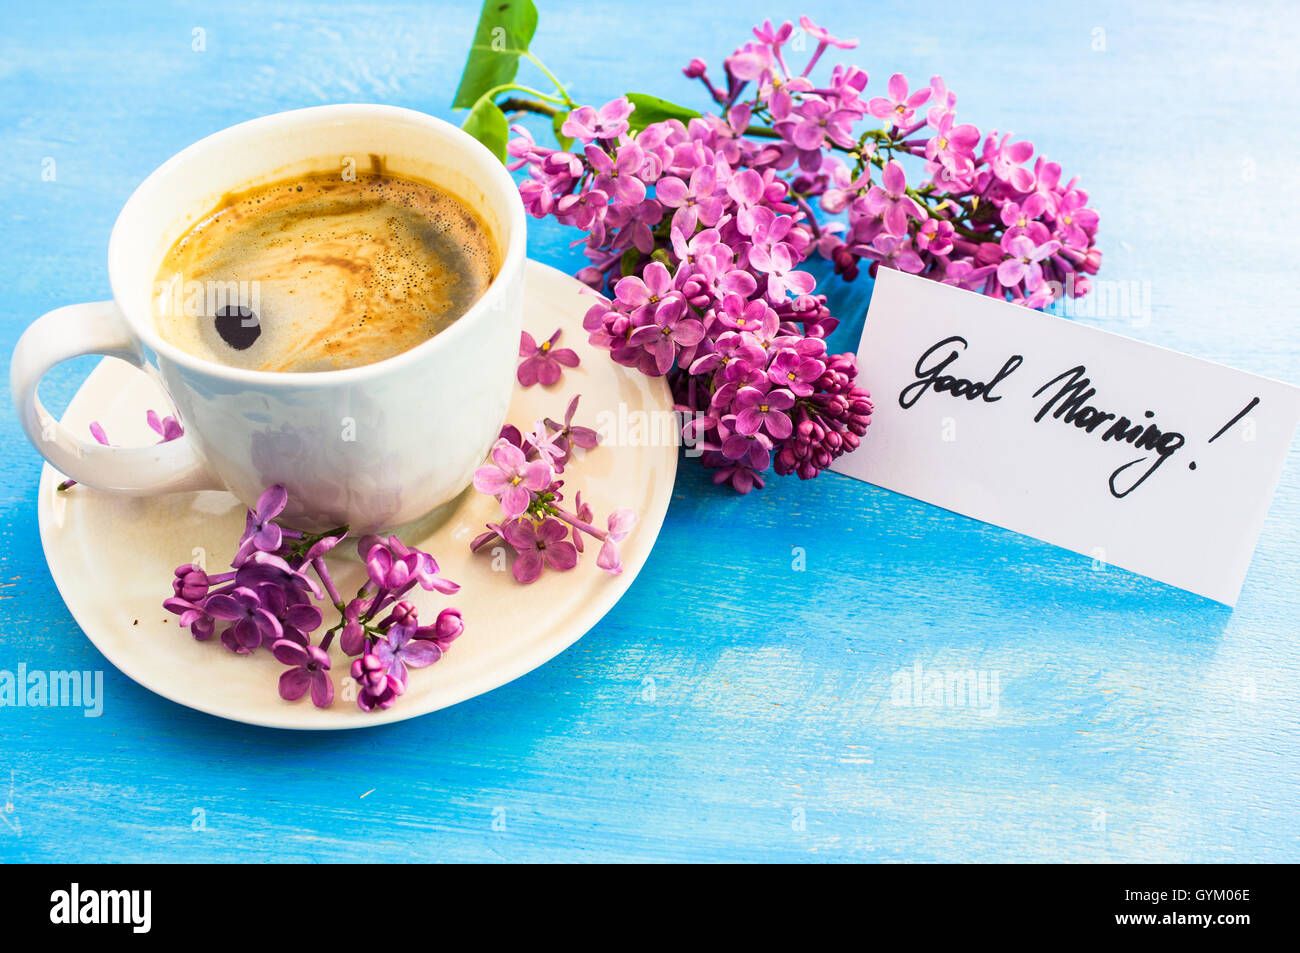 Lilac Flowers And Cup Of Coffee With Good Morning Note On